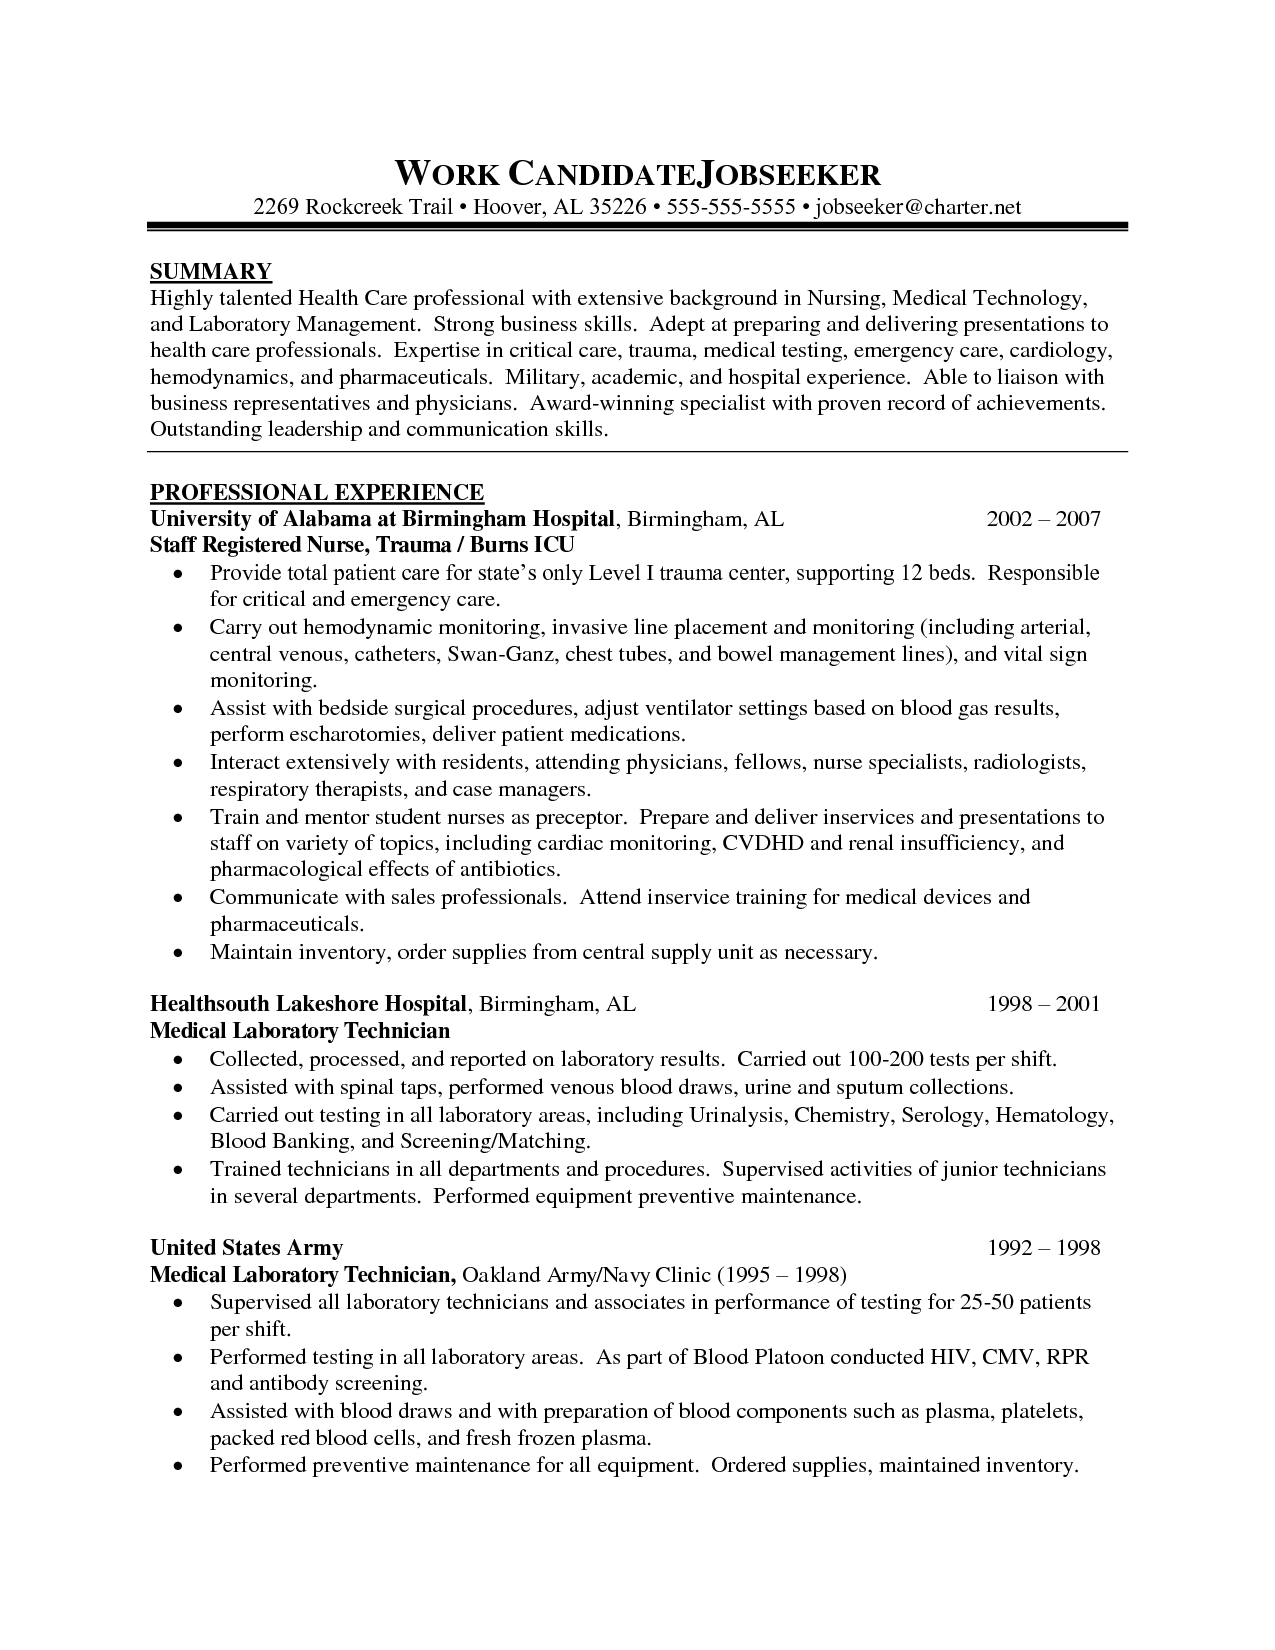 Example Of Military Resume Best Resume Examples Nursing Student  Pinterest  Professional Resume .